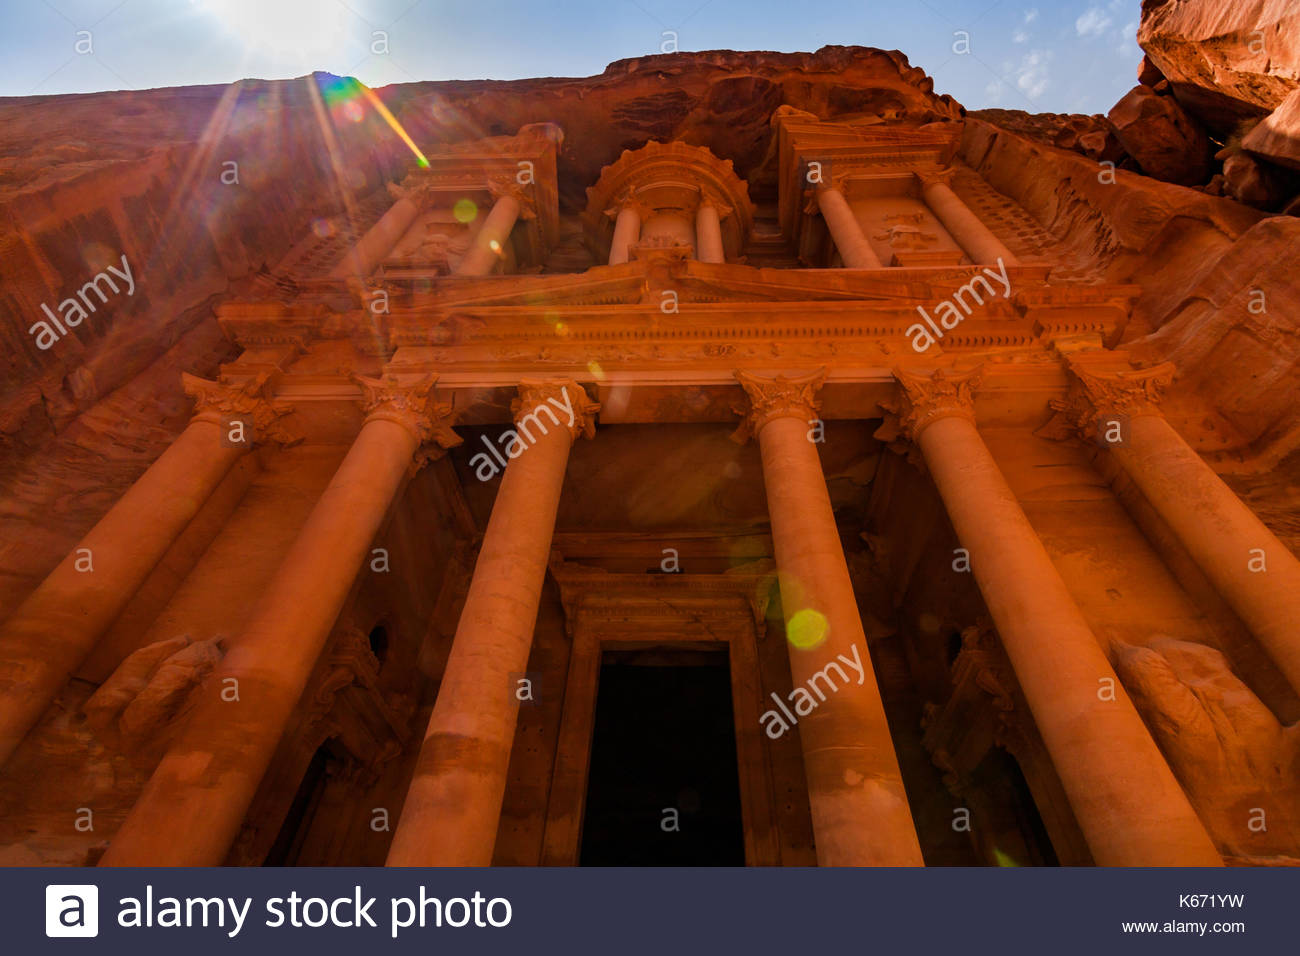 Al Khazneh - the treasury, ancient city of Petra, Jordan. Stock Photo